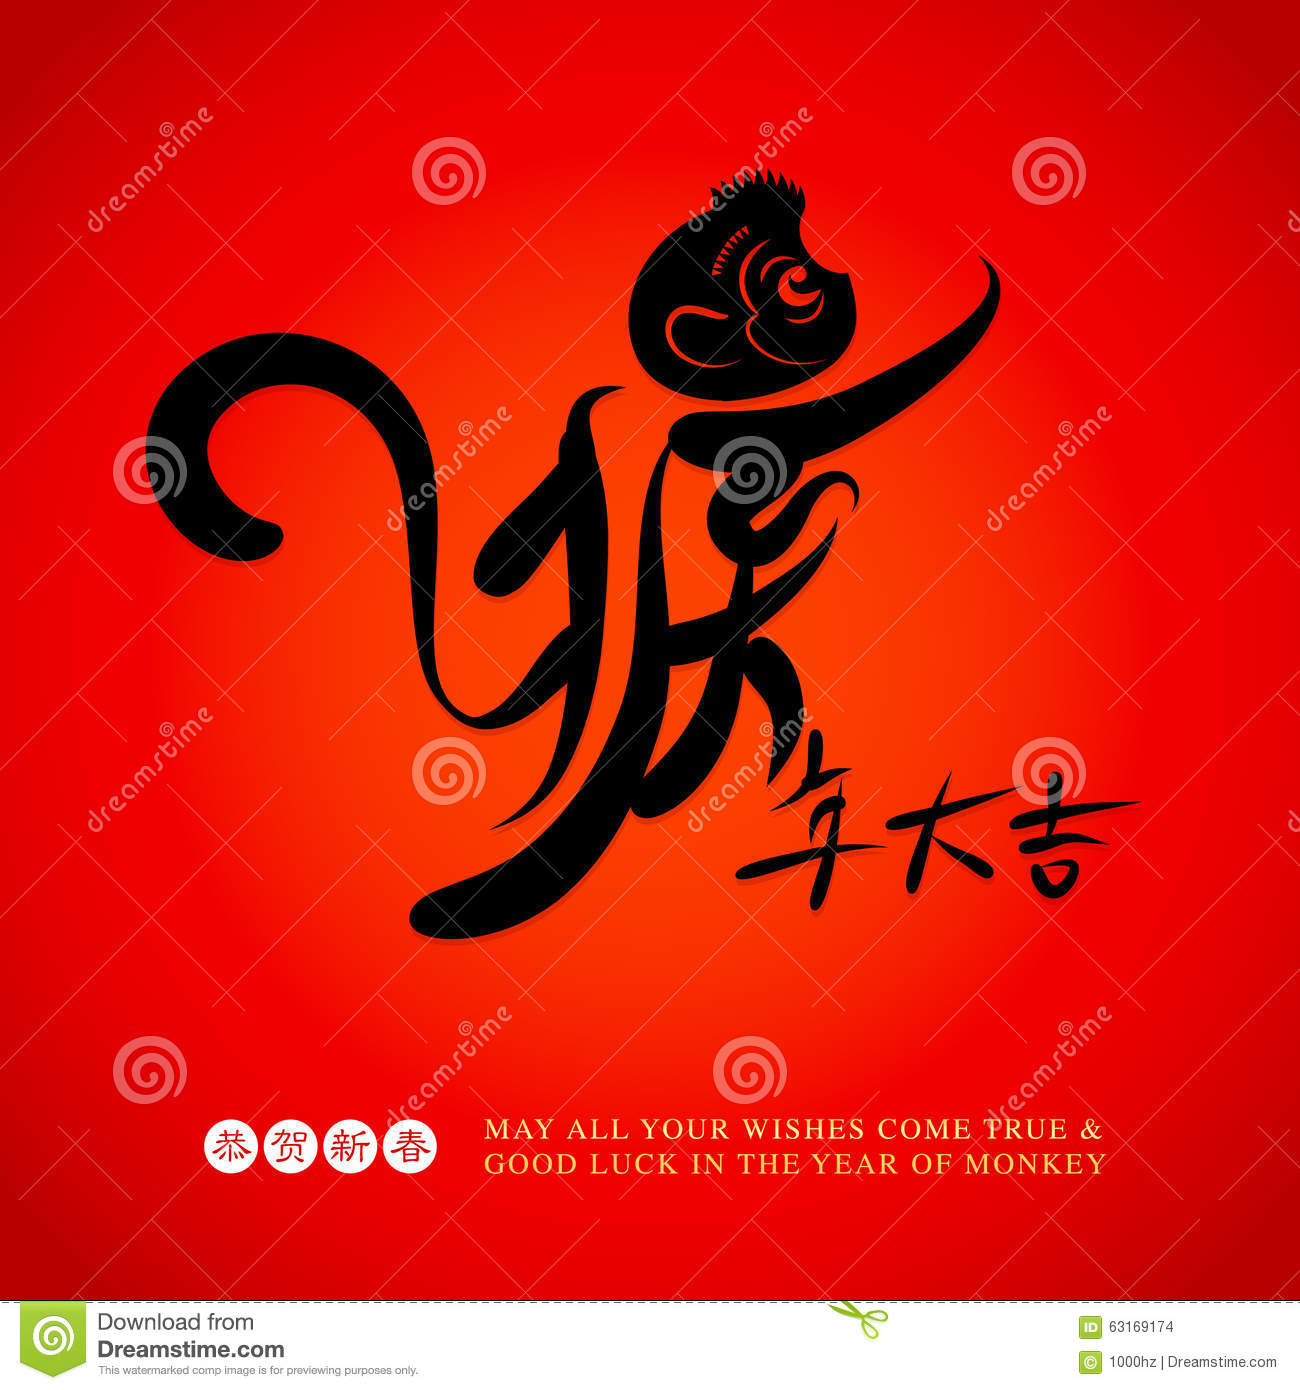 New Chinese New Year Greetings Words In Cantonese